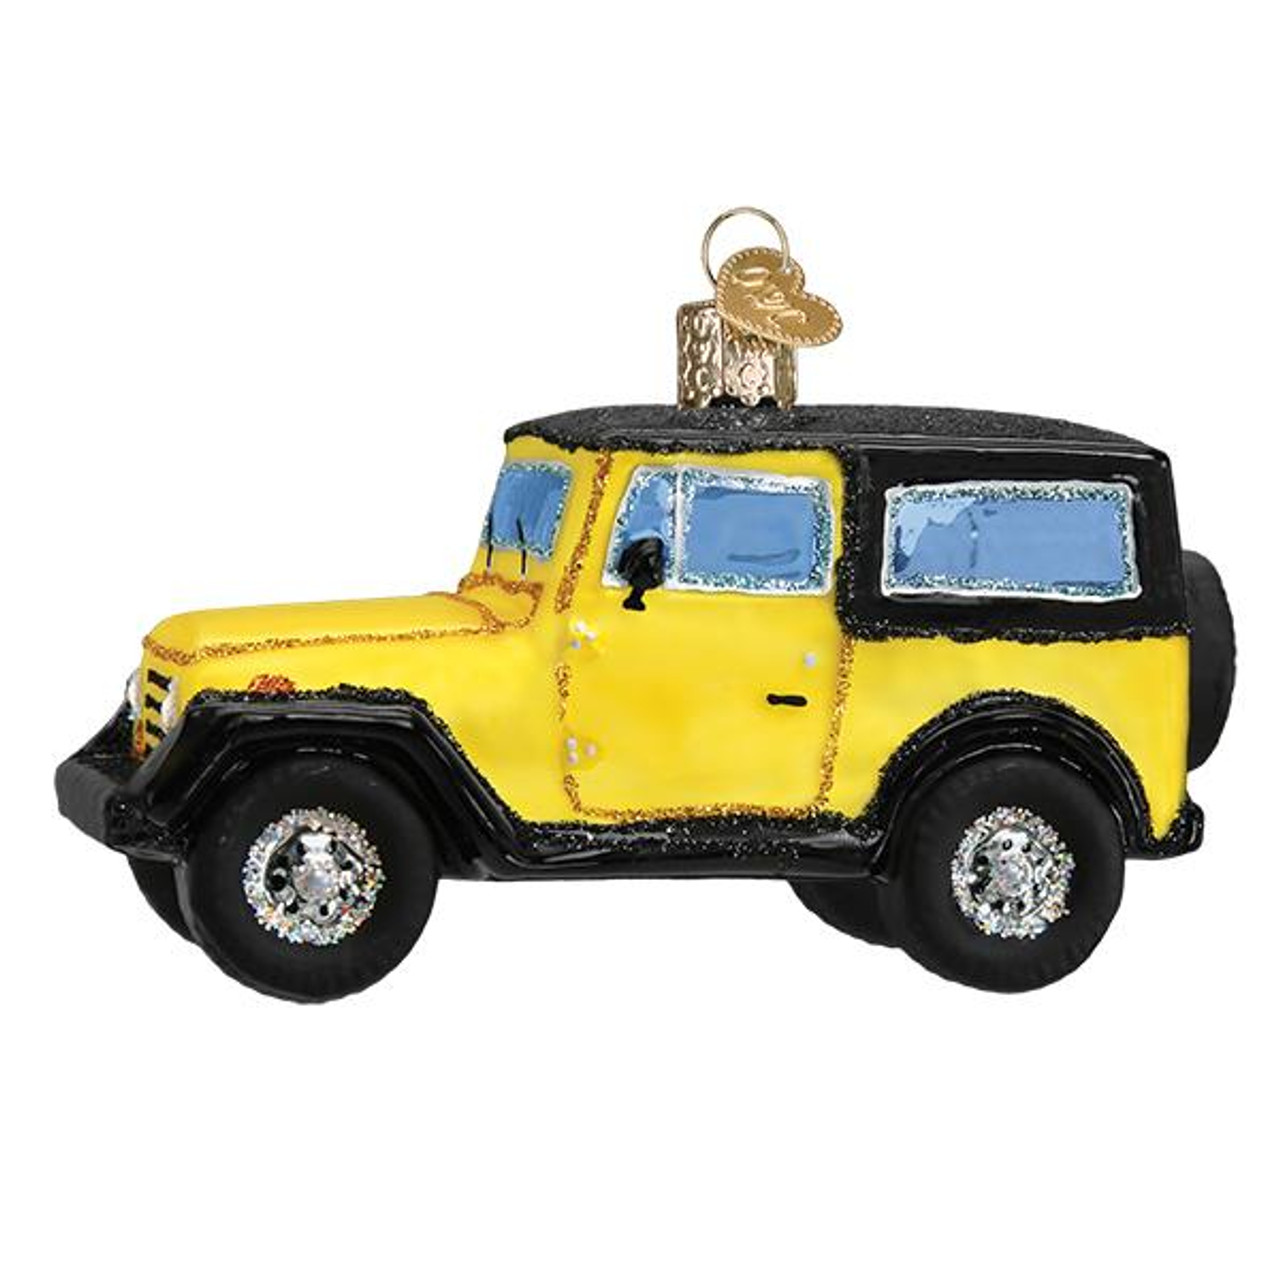 Jeep Christmas Ornament.Compact Sport Utility Vehicle Glass Ornament 4 1 2 Owc 46083